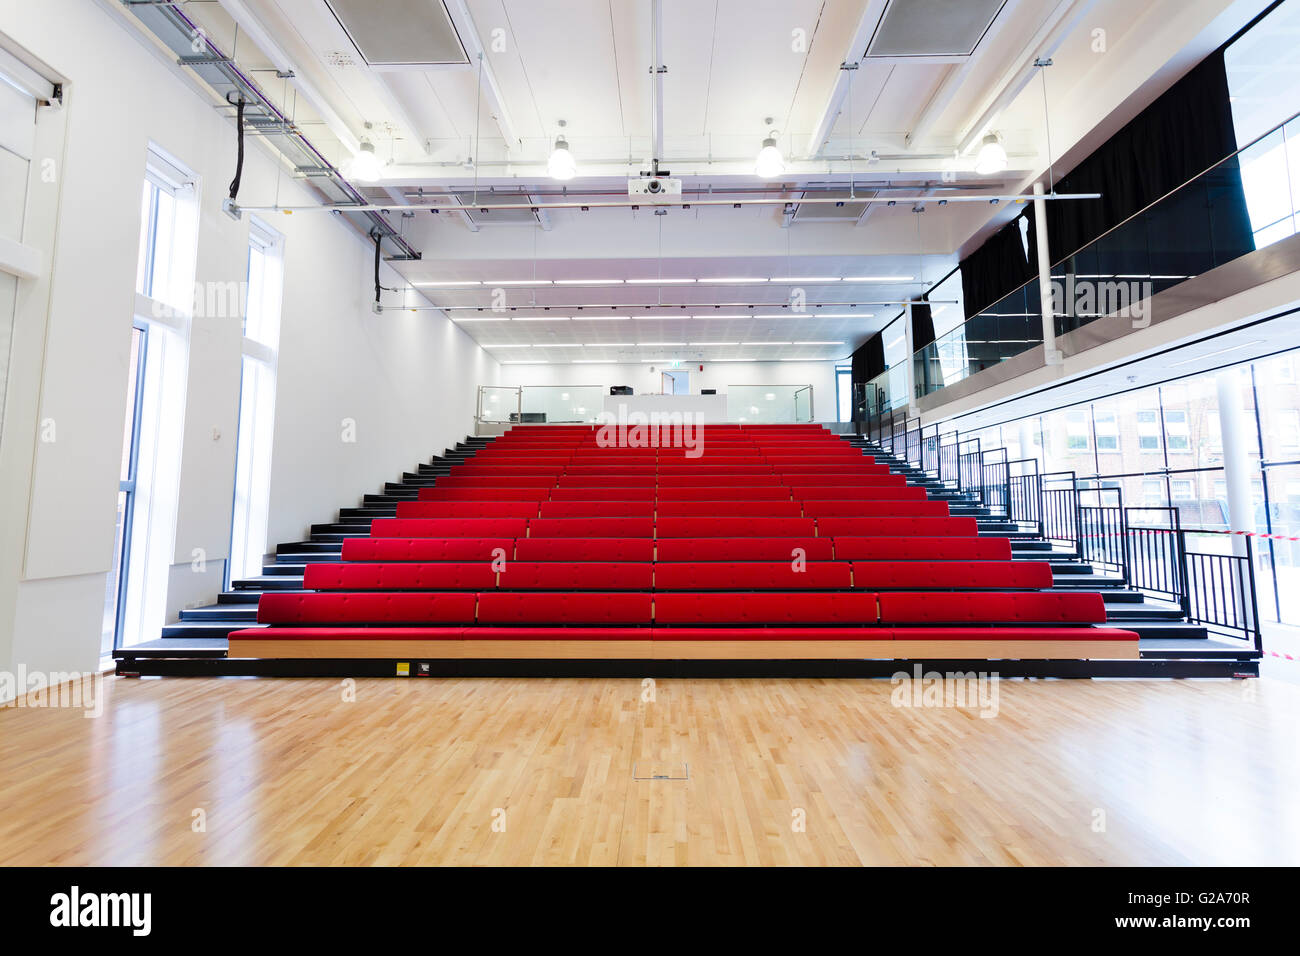 Open retractable seating at the school hall, Notting Hill and Ealing High School, Ealing, London, England - Stock Image